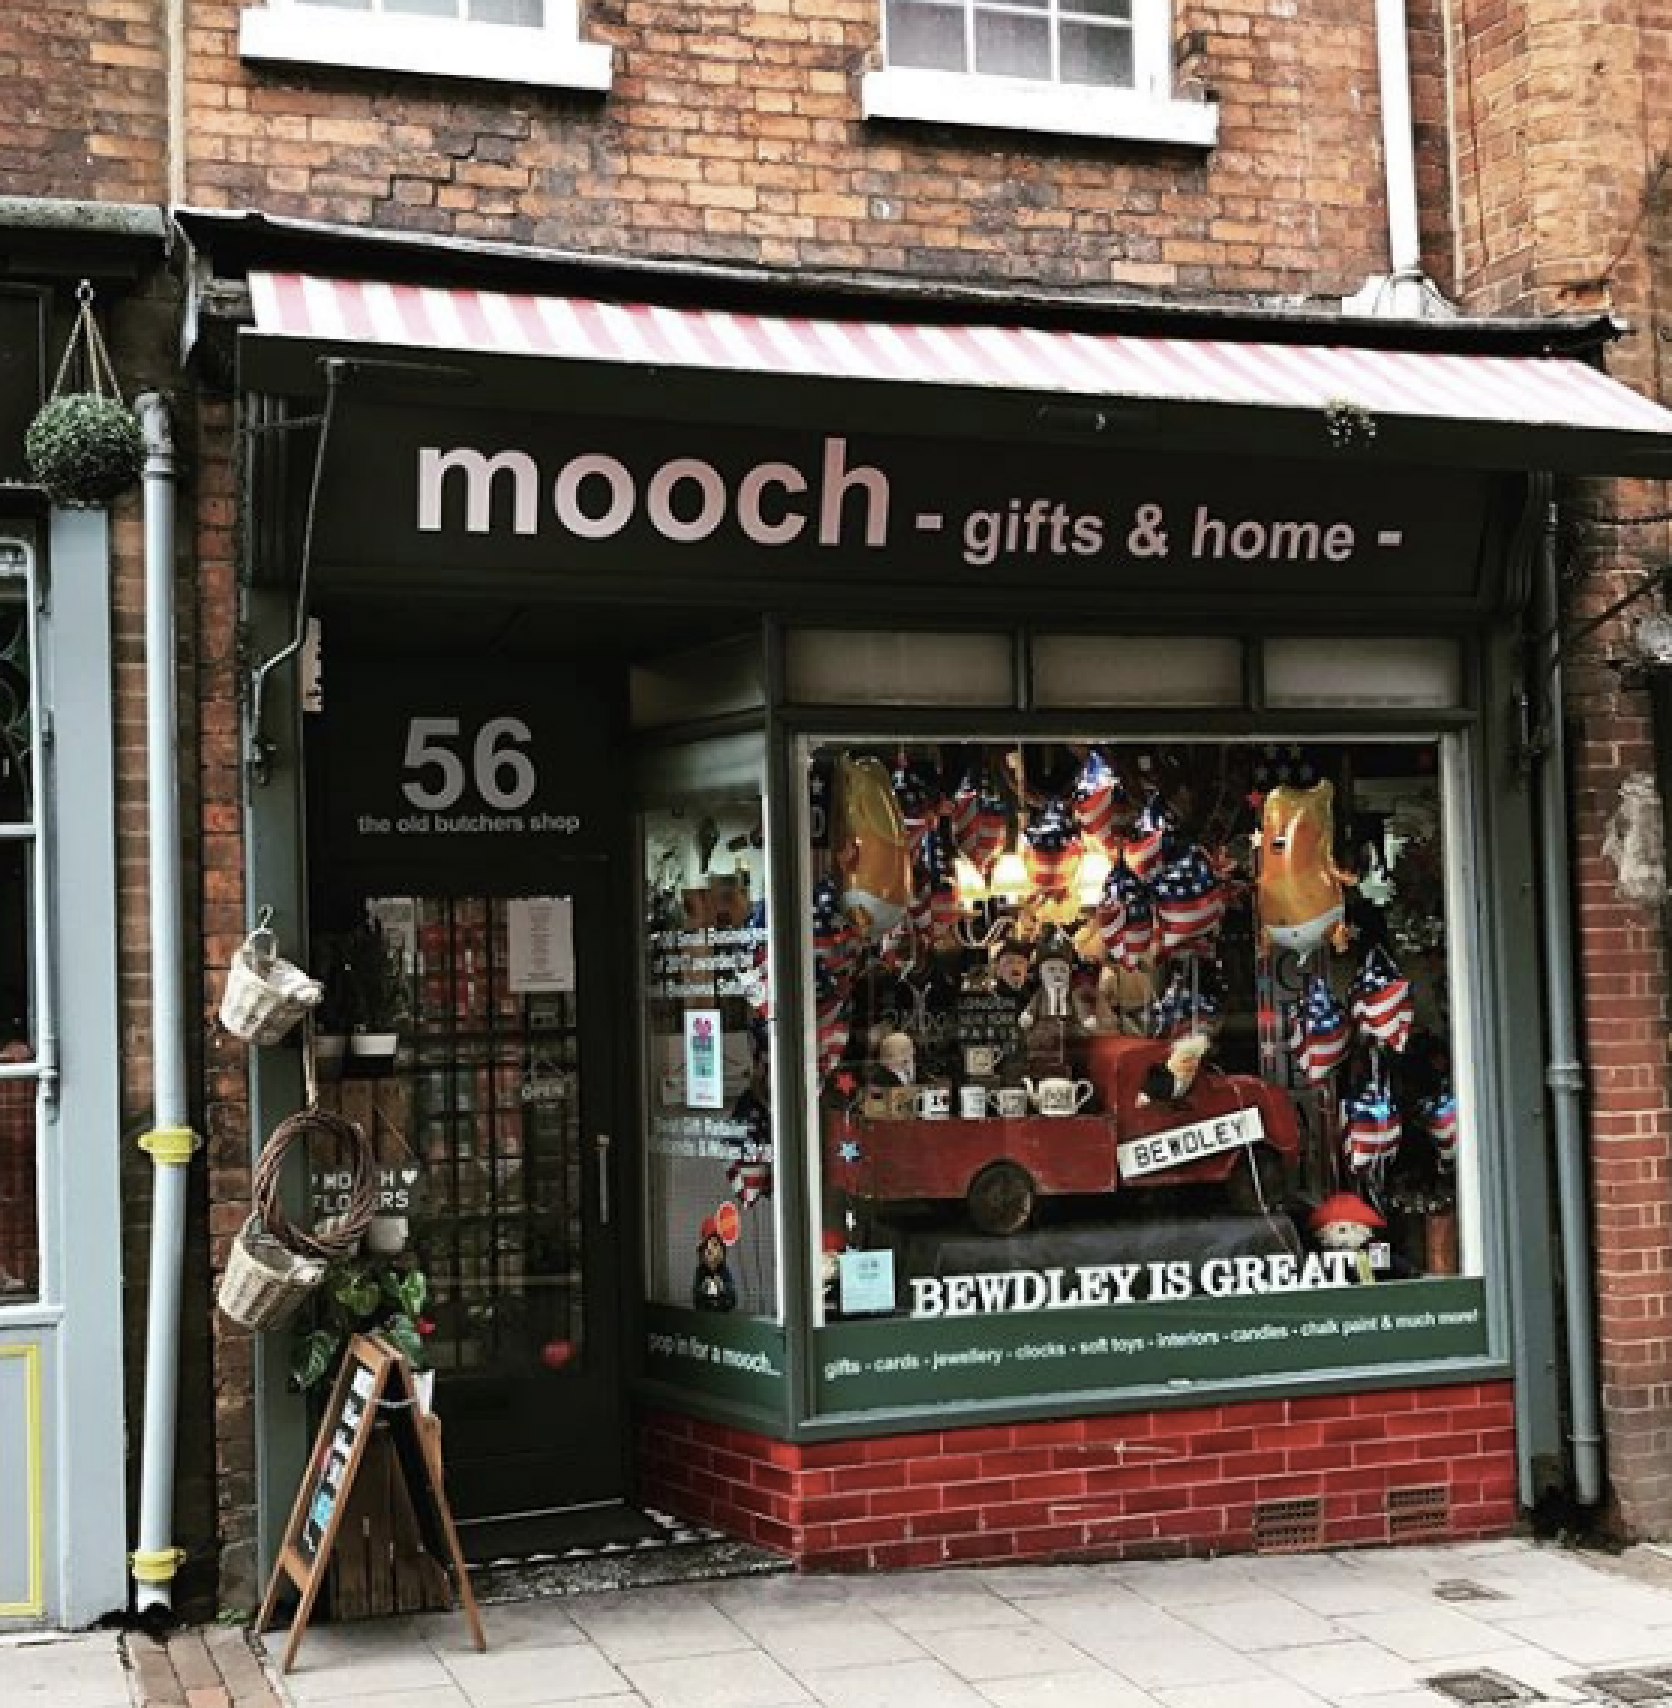 Above: The Mooch Gifts & Home shop in Bewdley.